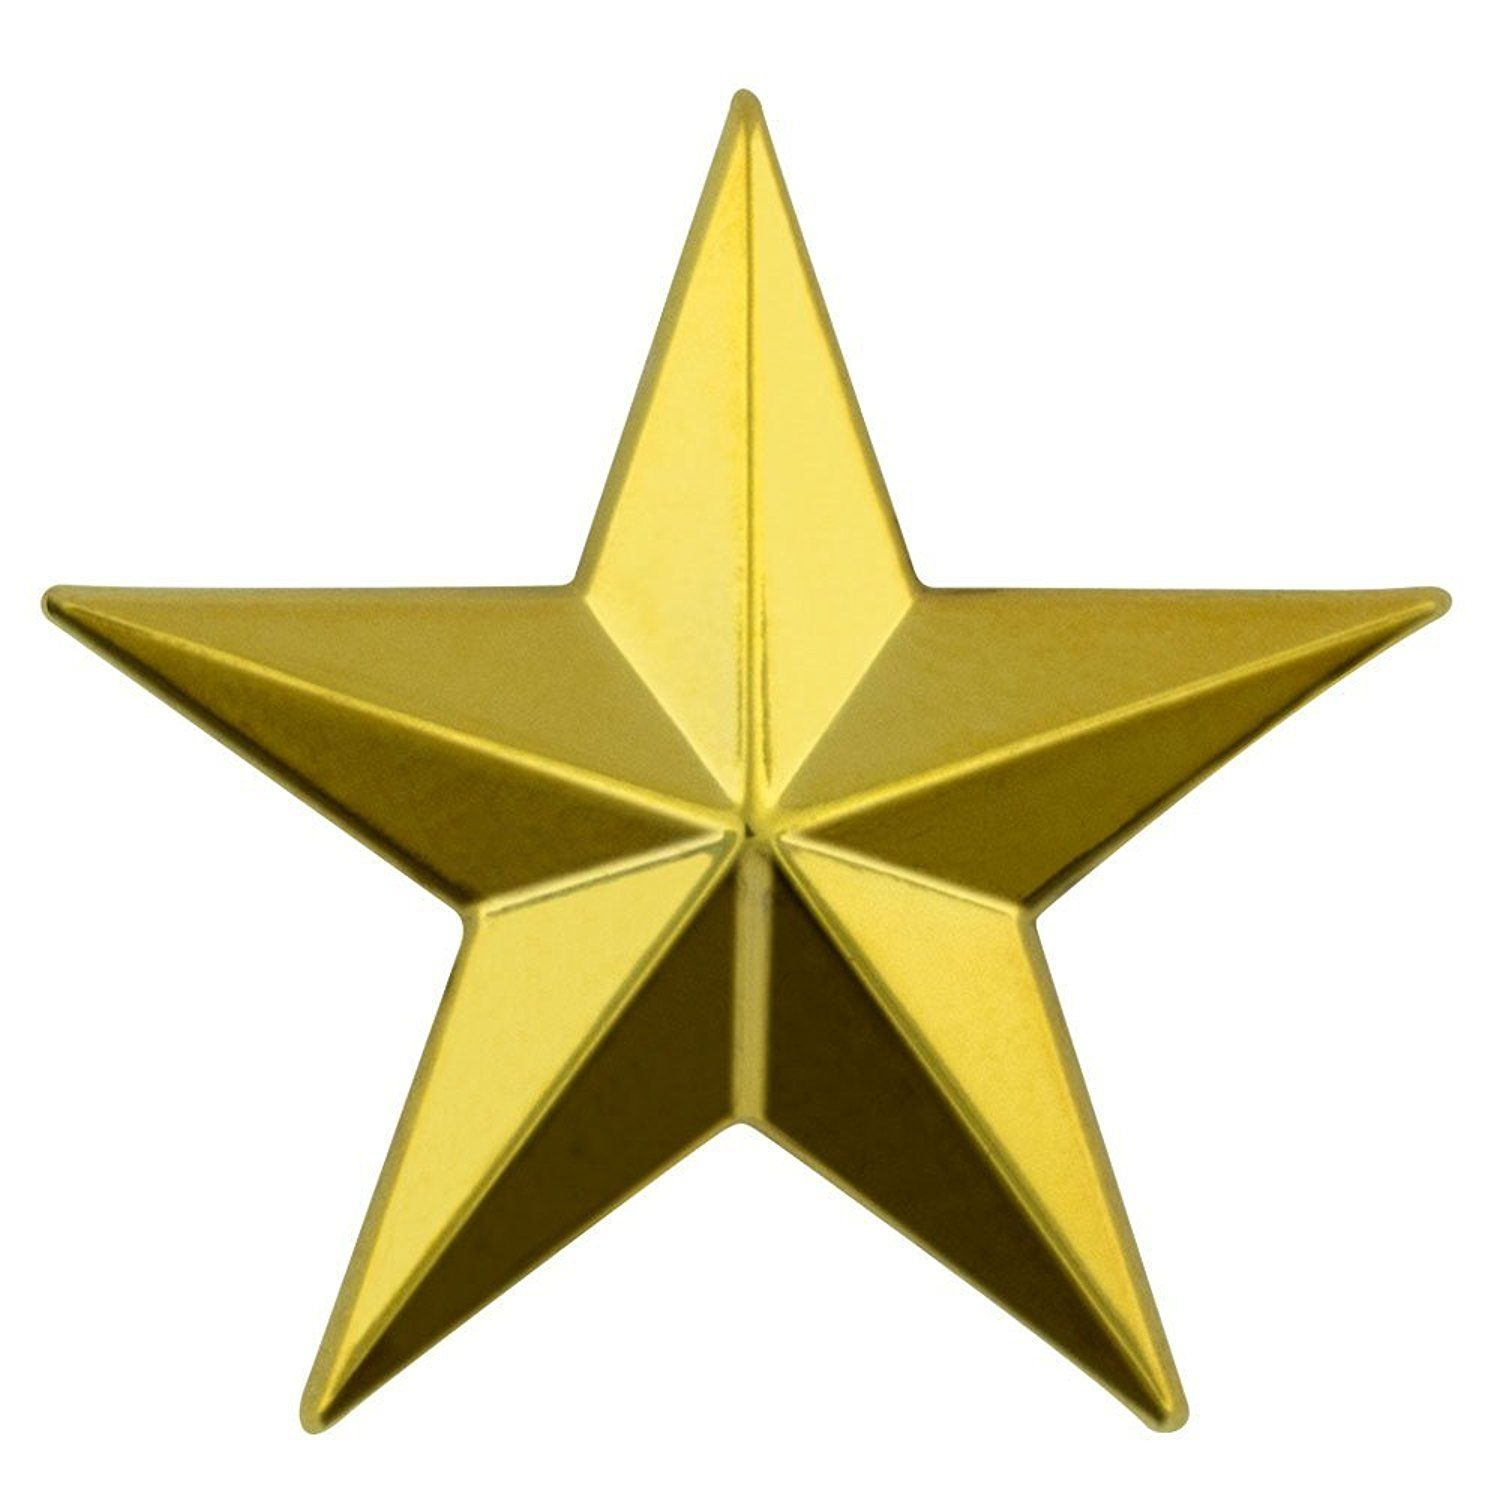 Pinmart S Military 3d 5 Point Gold Star Lapel Pin See This Great Product This Is An Affiliate Link Broochesandpins Gold Stars Lapel Pins Stars